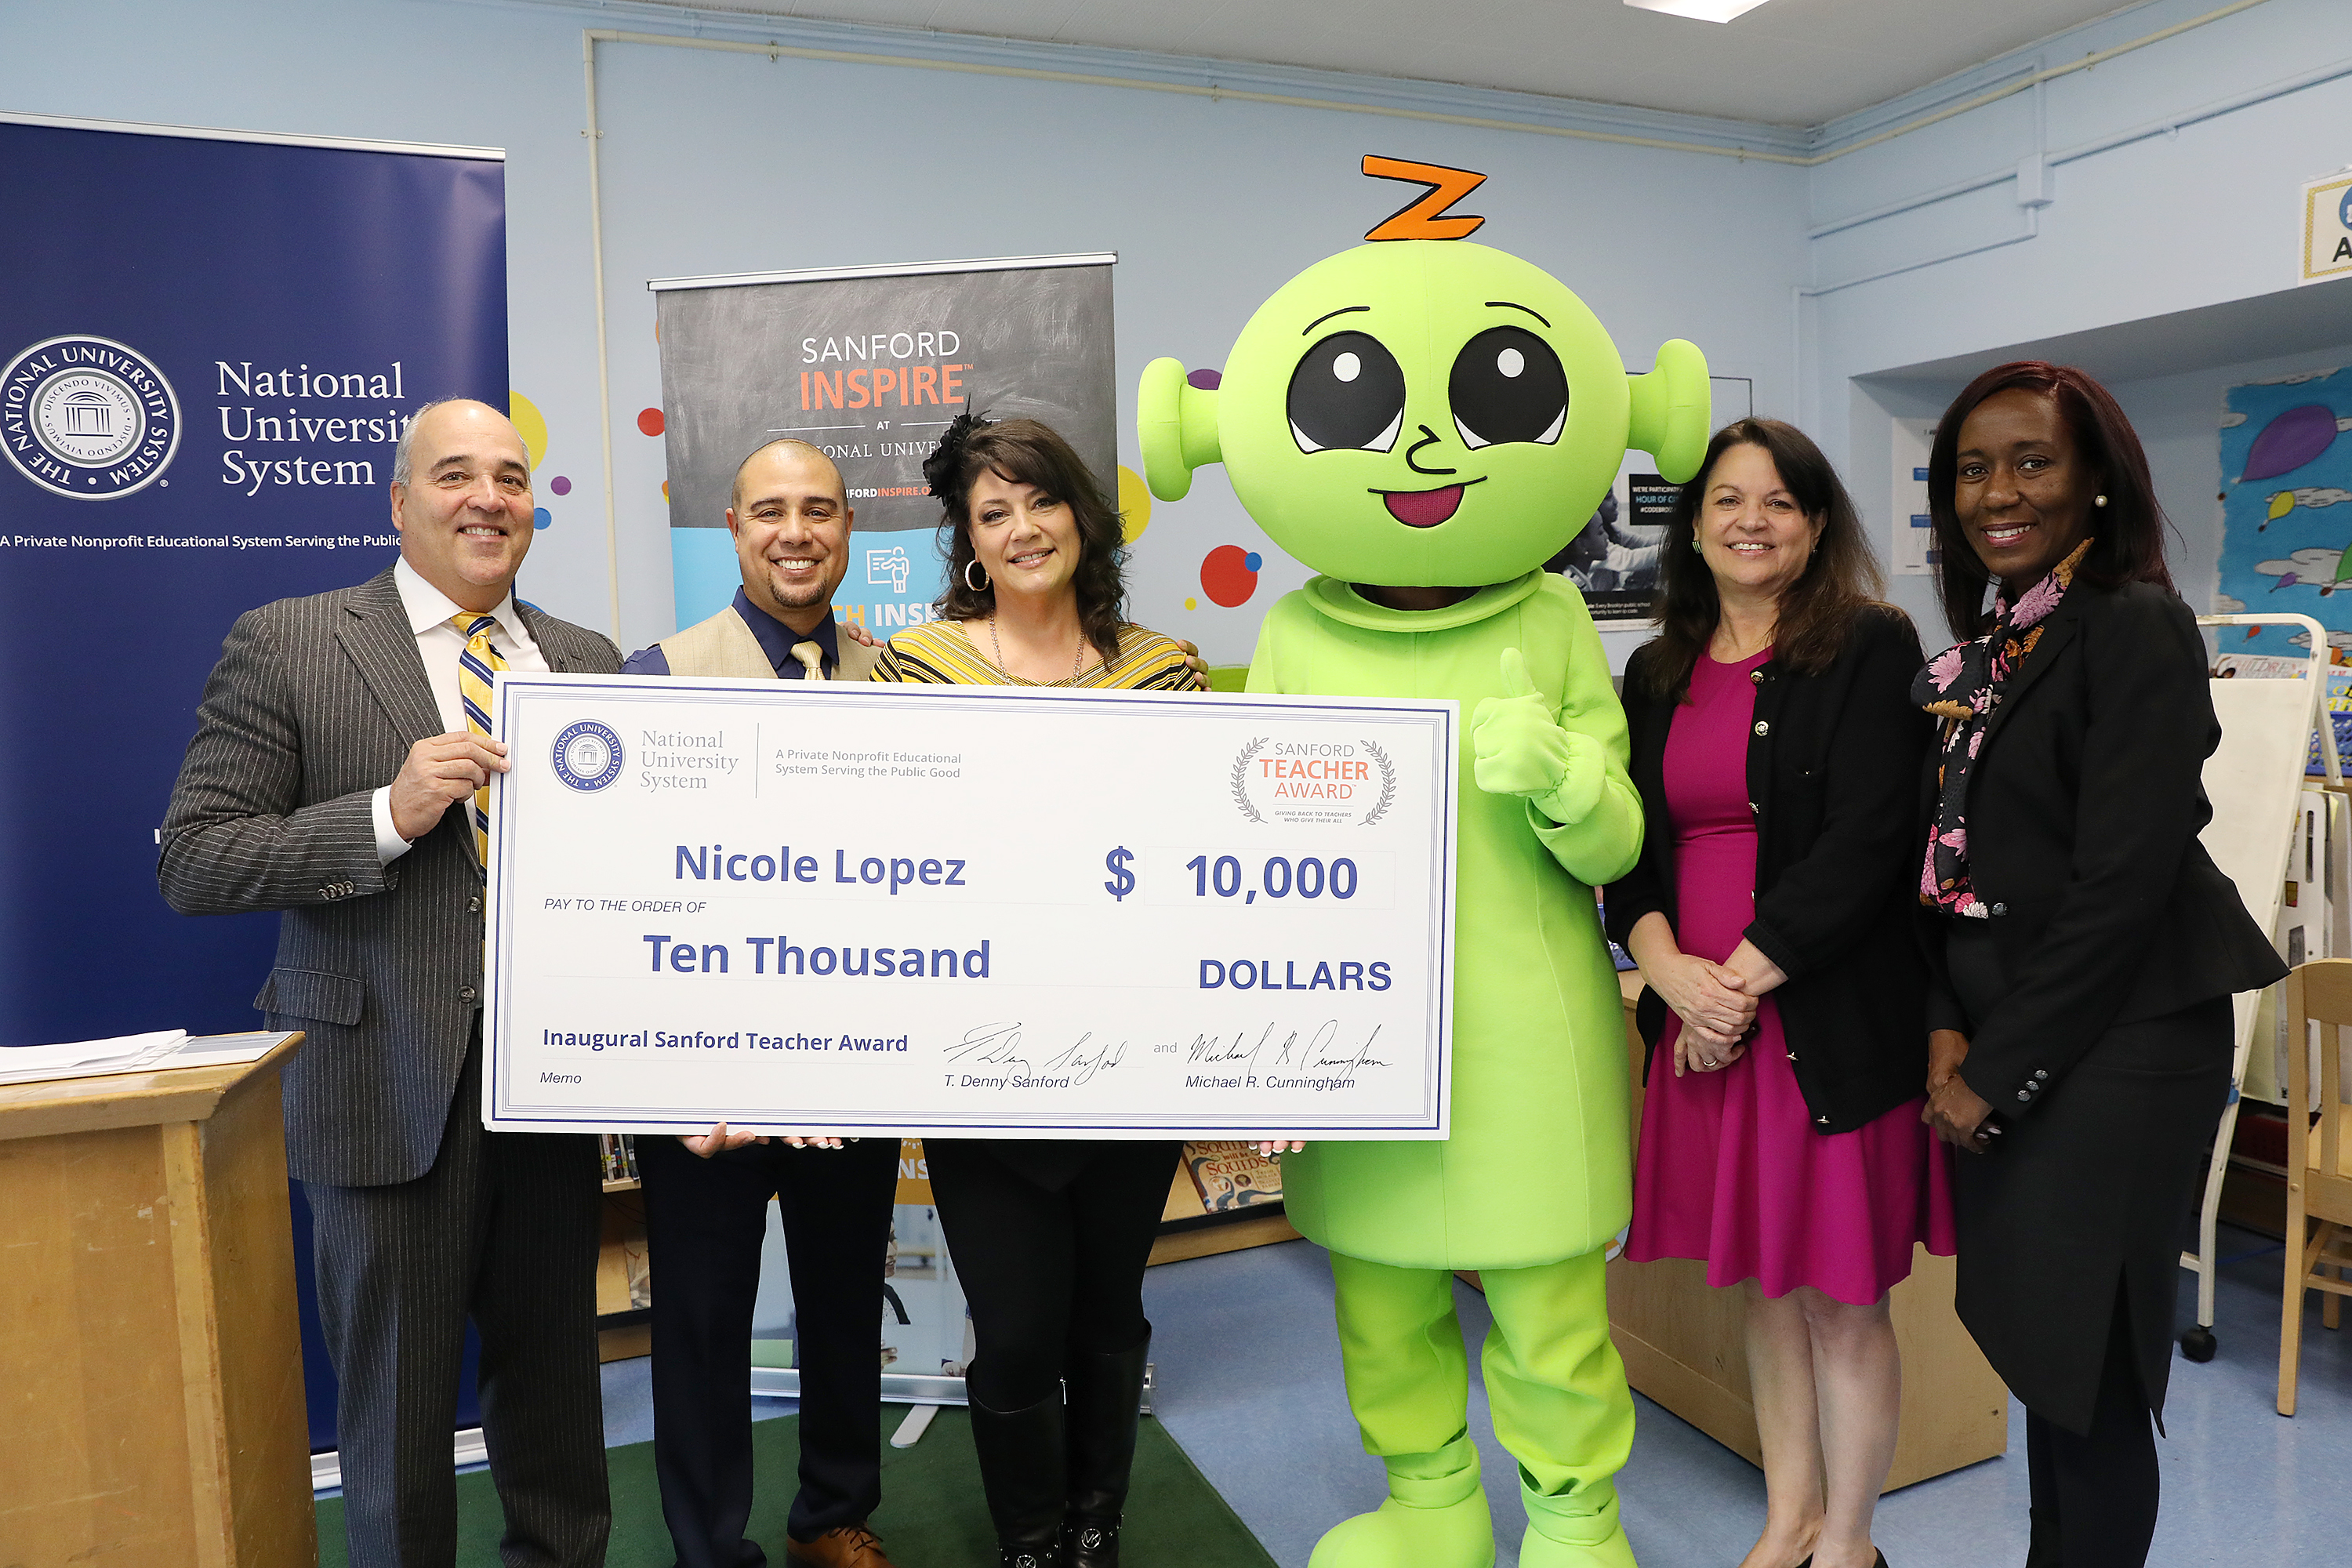 Nicole Lopez Recognized as an Inspirational Teacher